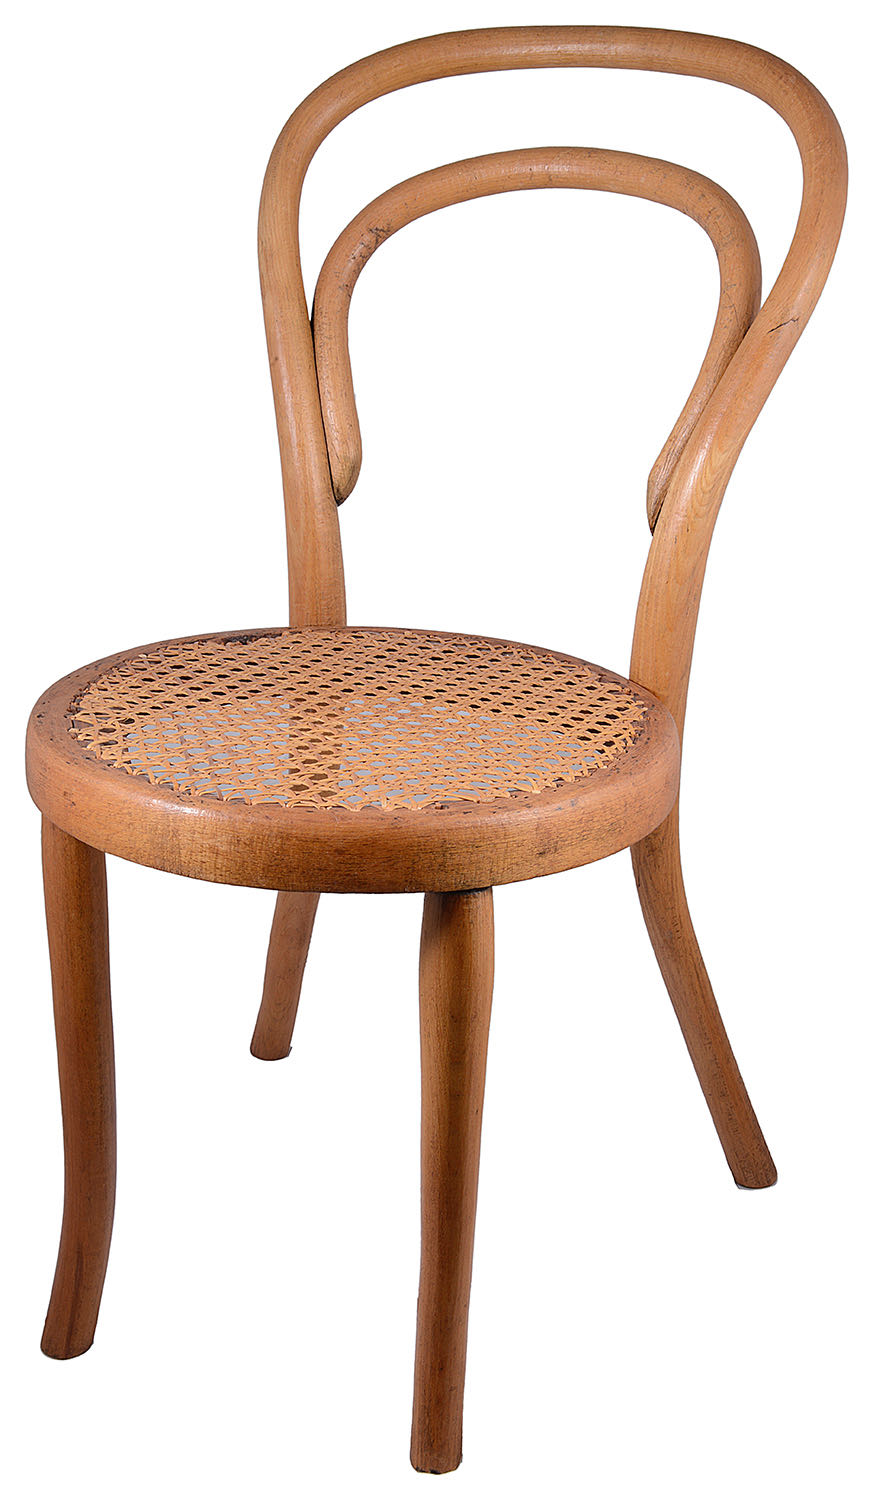 Lot 1 - Early 20th c. Dryad Cane Furniture model 1356 'Banshee' child's chair; one other